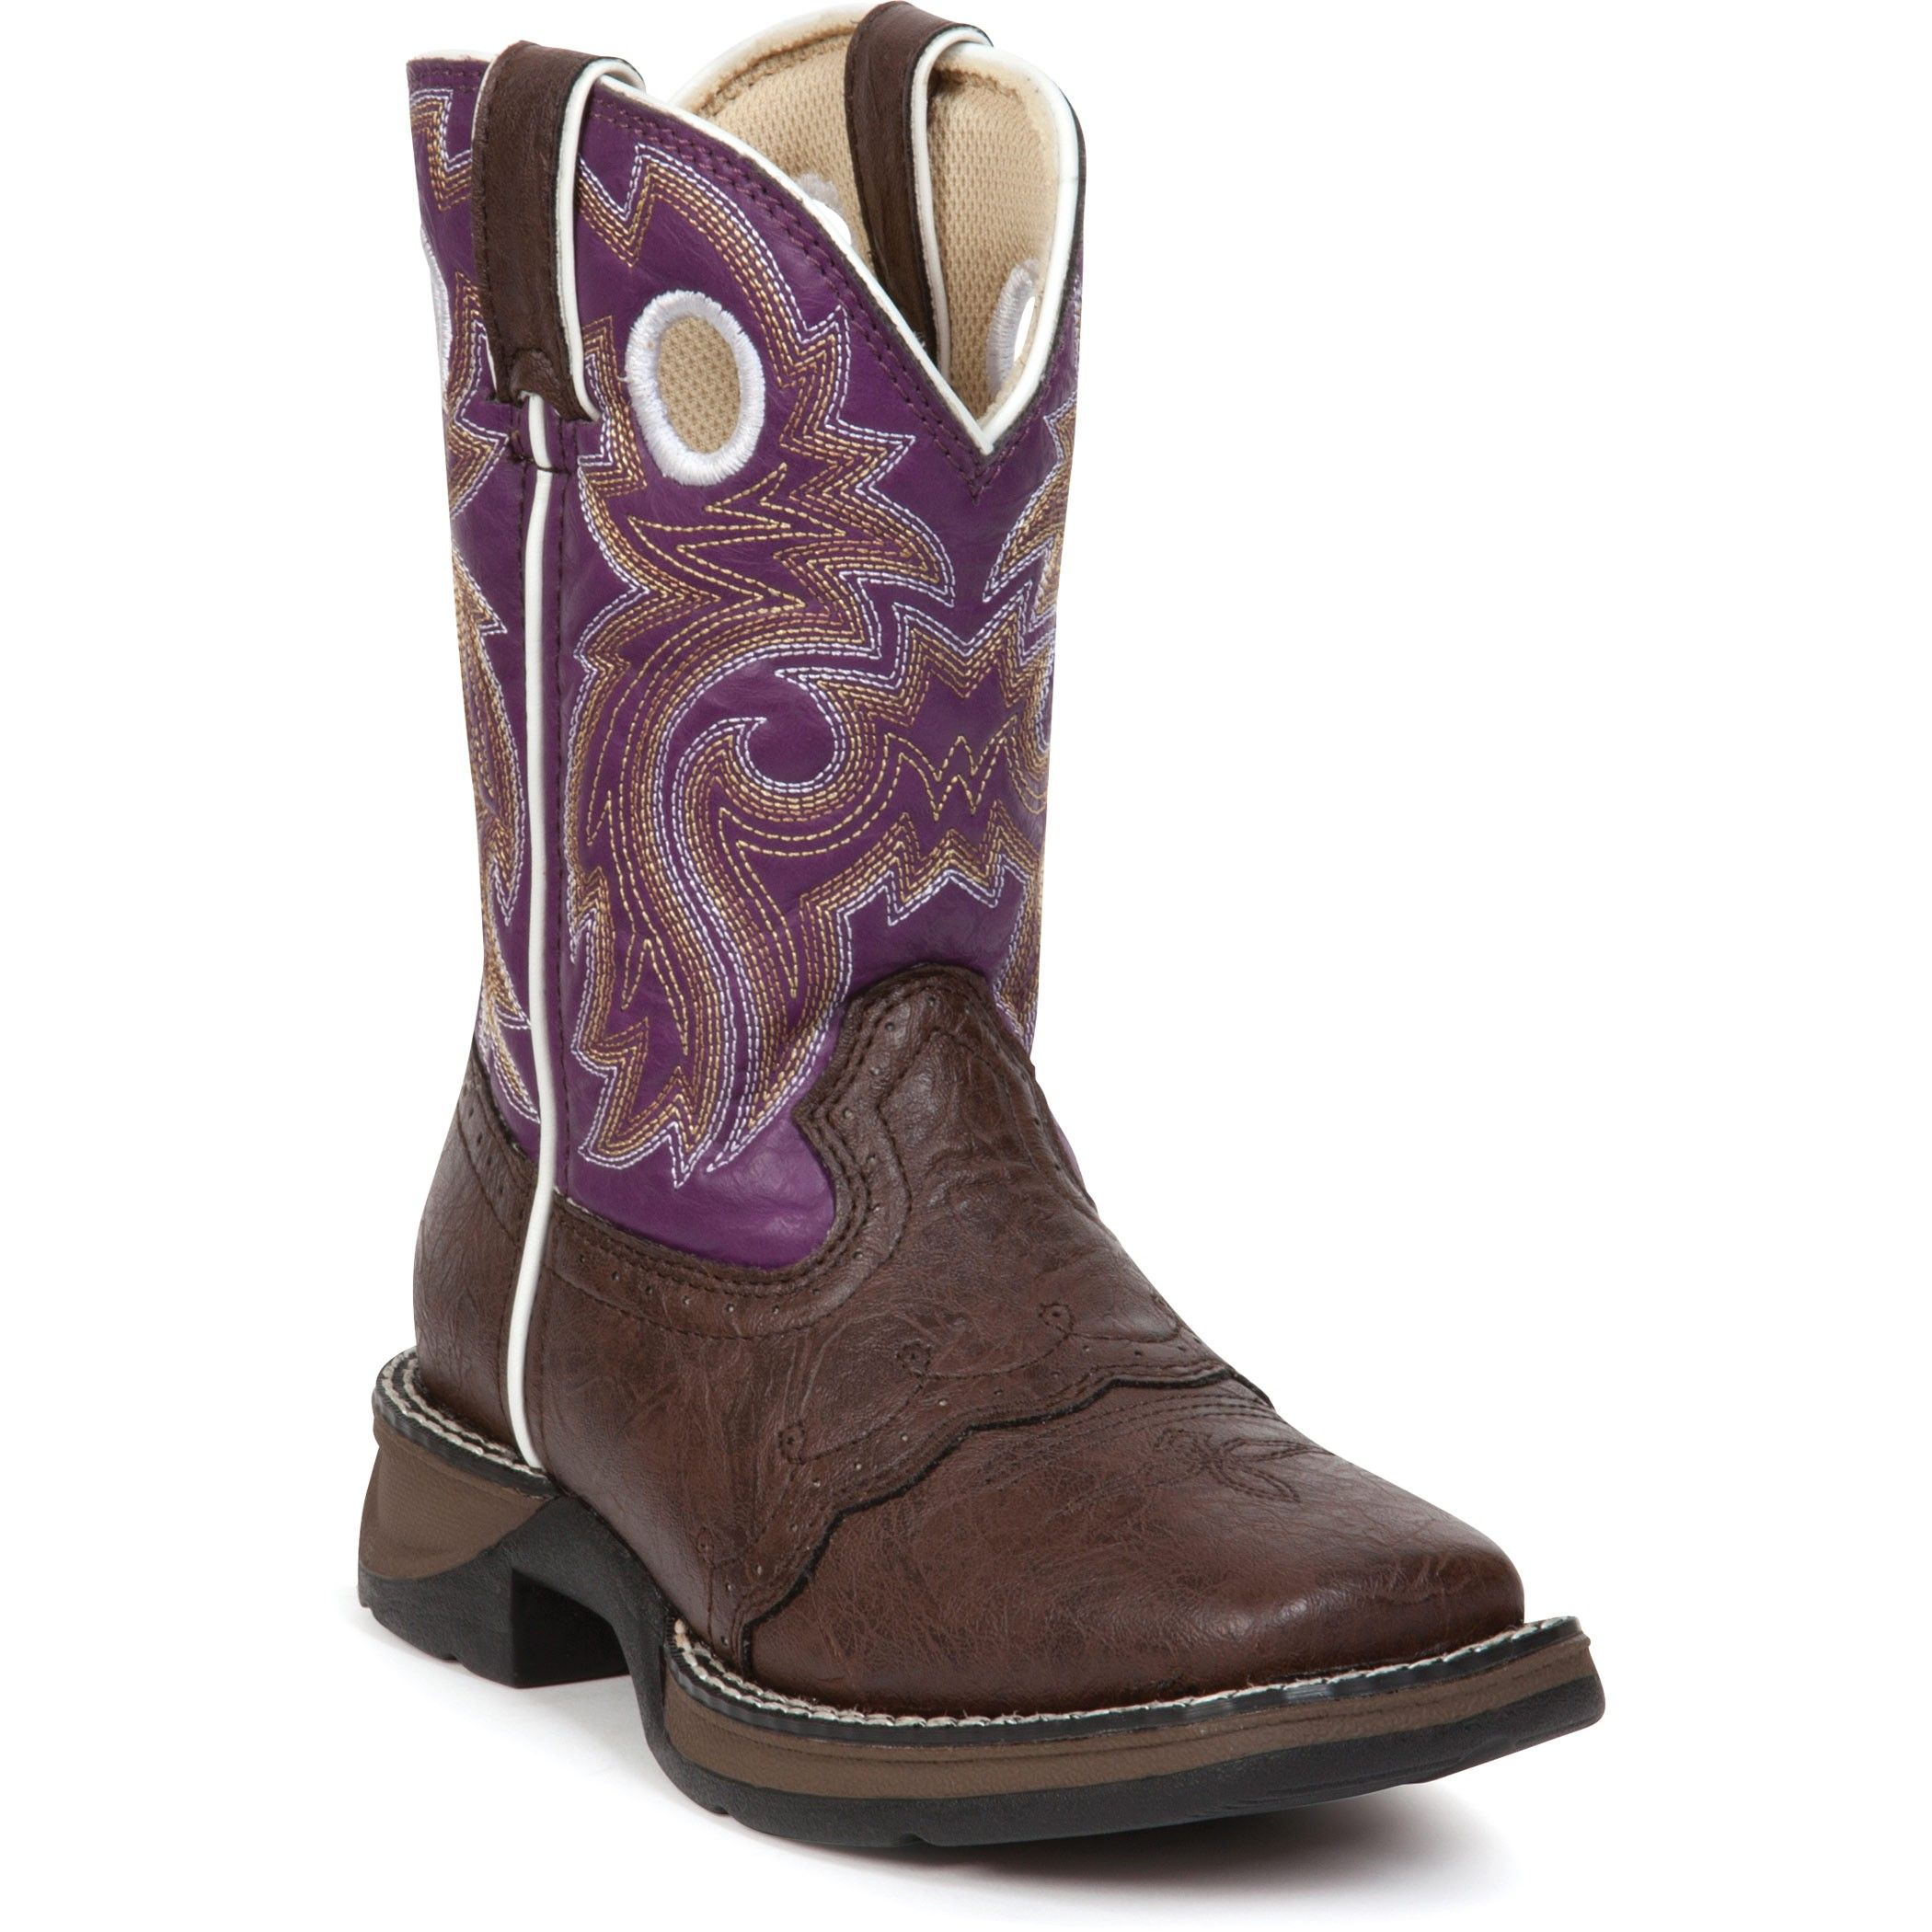 Childrens Cowgirl Boots - Cr Boot